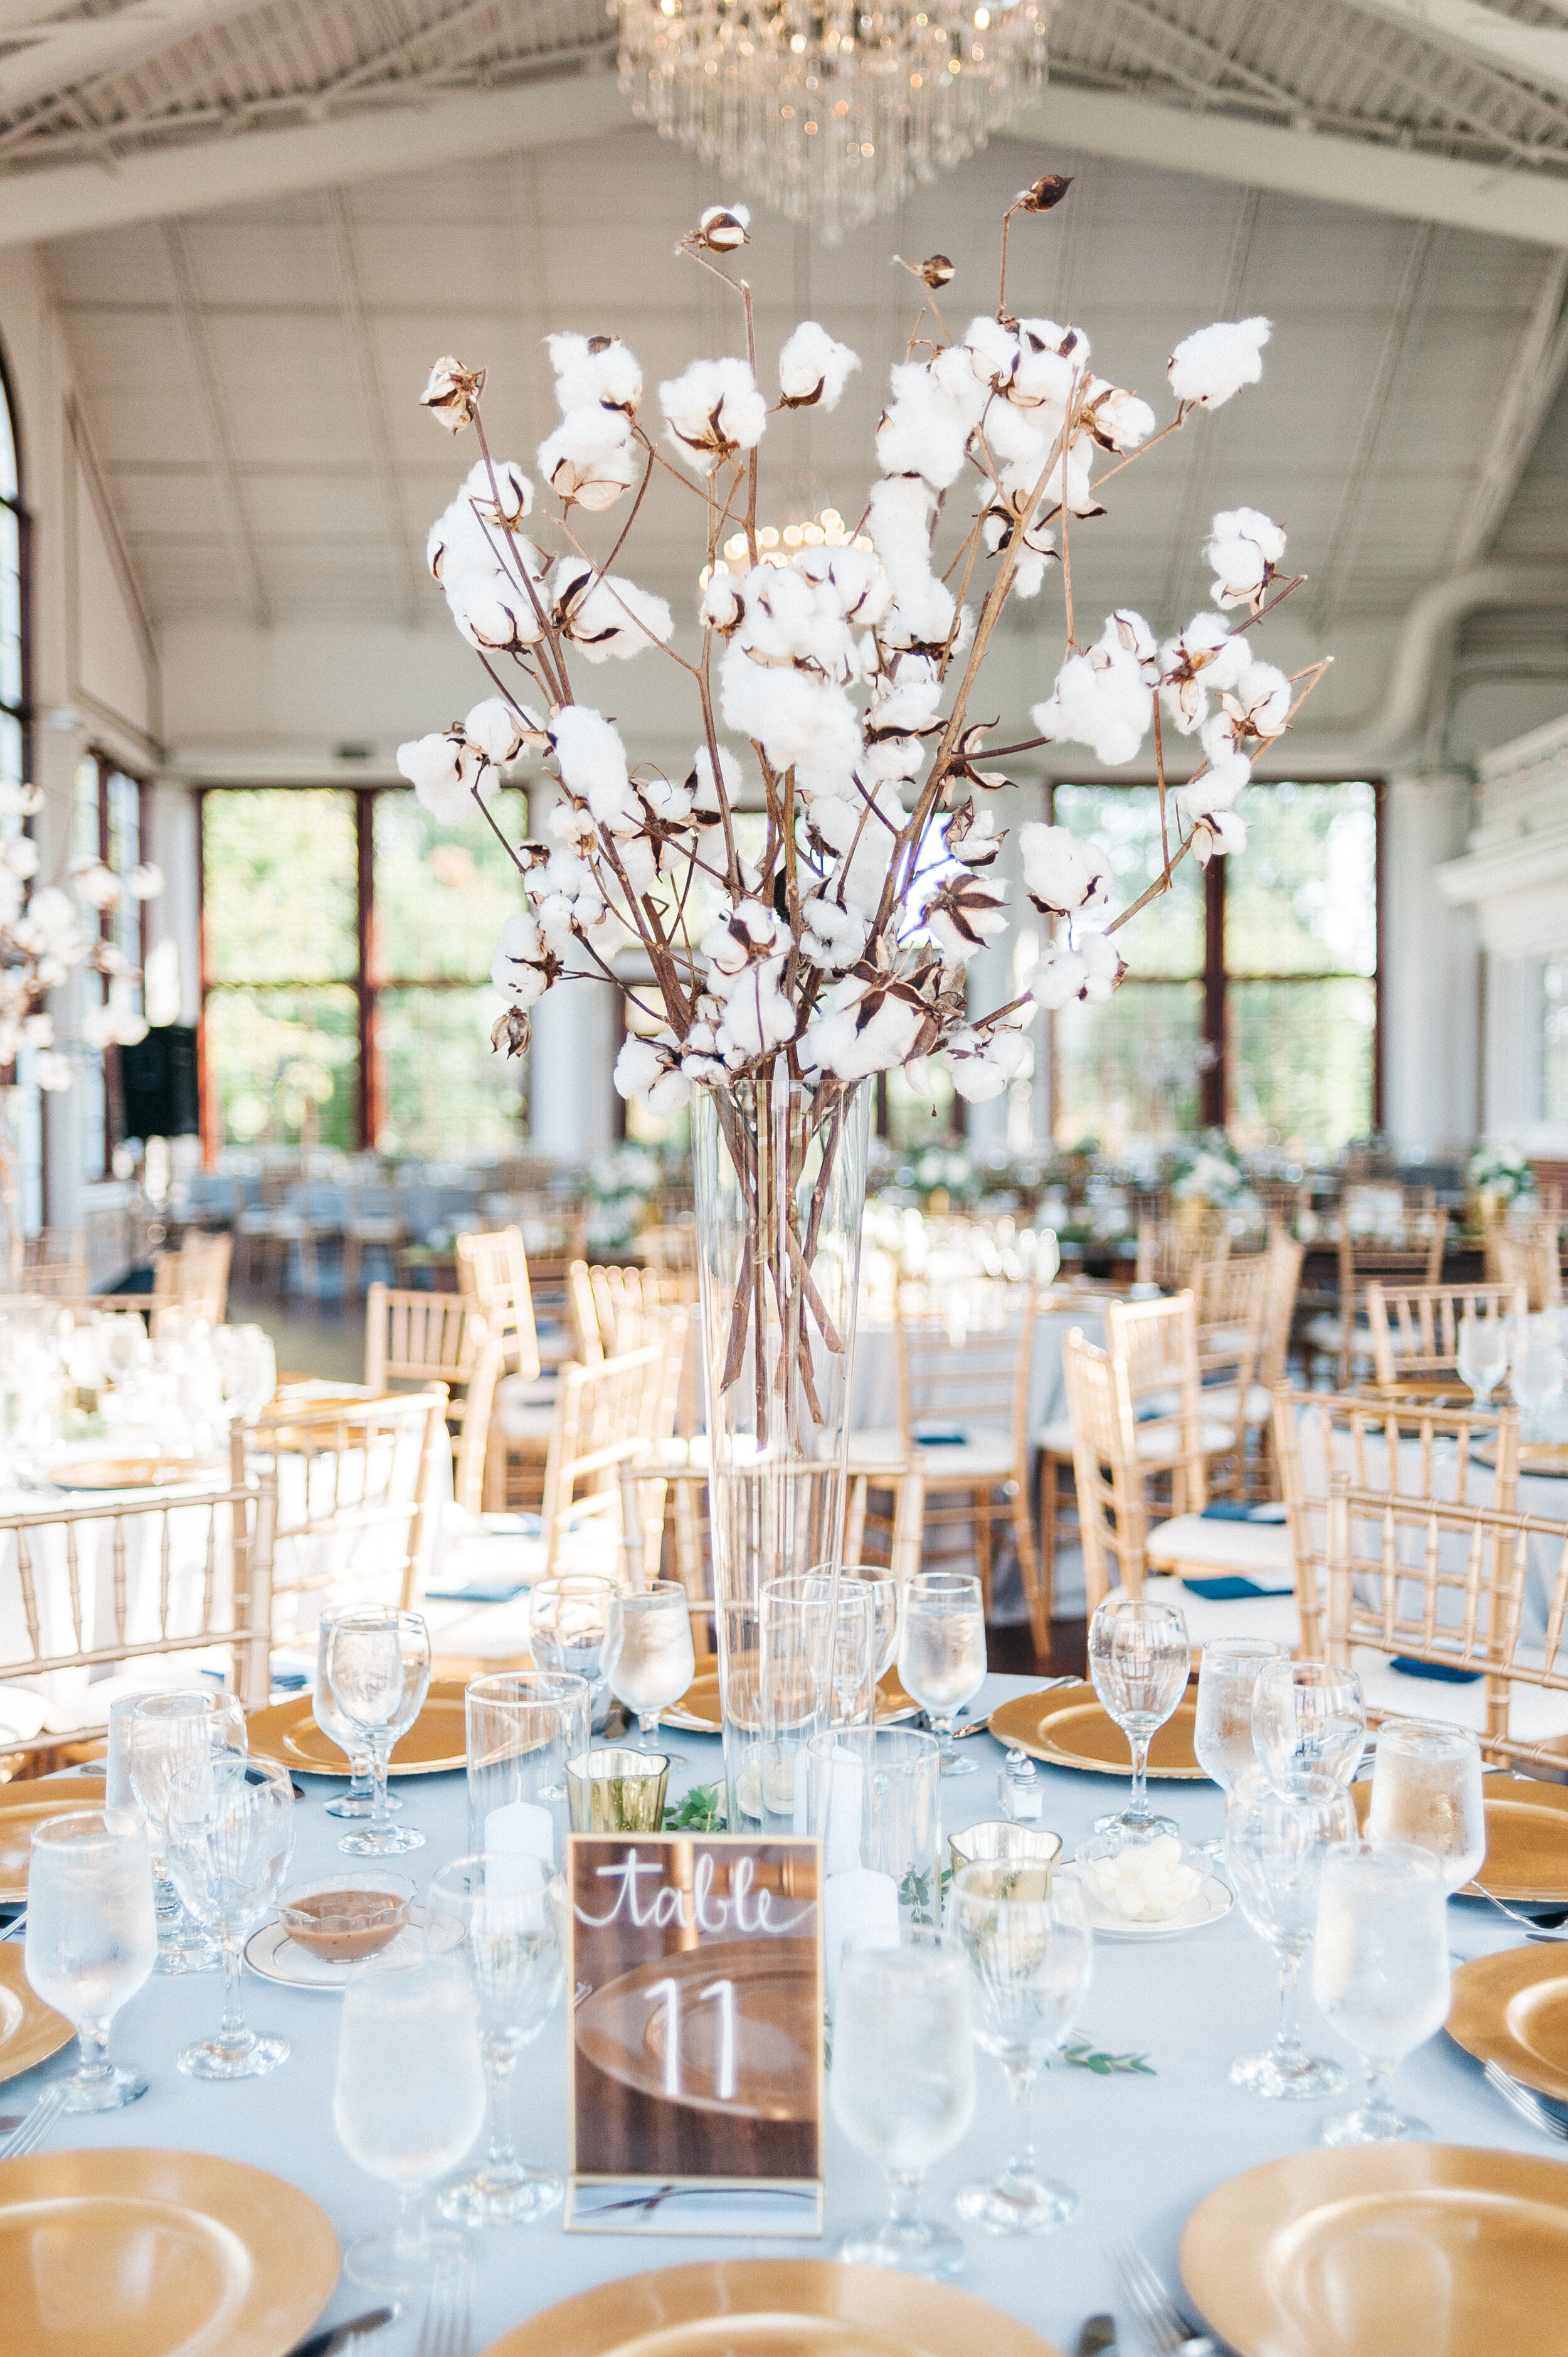 Reception - These tall cotton arrangements were so unique and perfect for the reception! We also repurposed the arrangements from the rehearsal dinner the night before. We love how all the blues, golds and whites came together. And how fun are the smores trailmix favors?